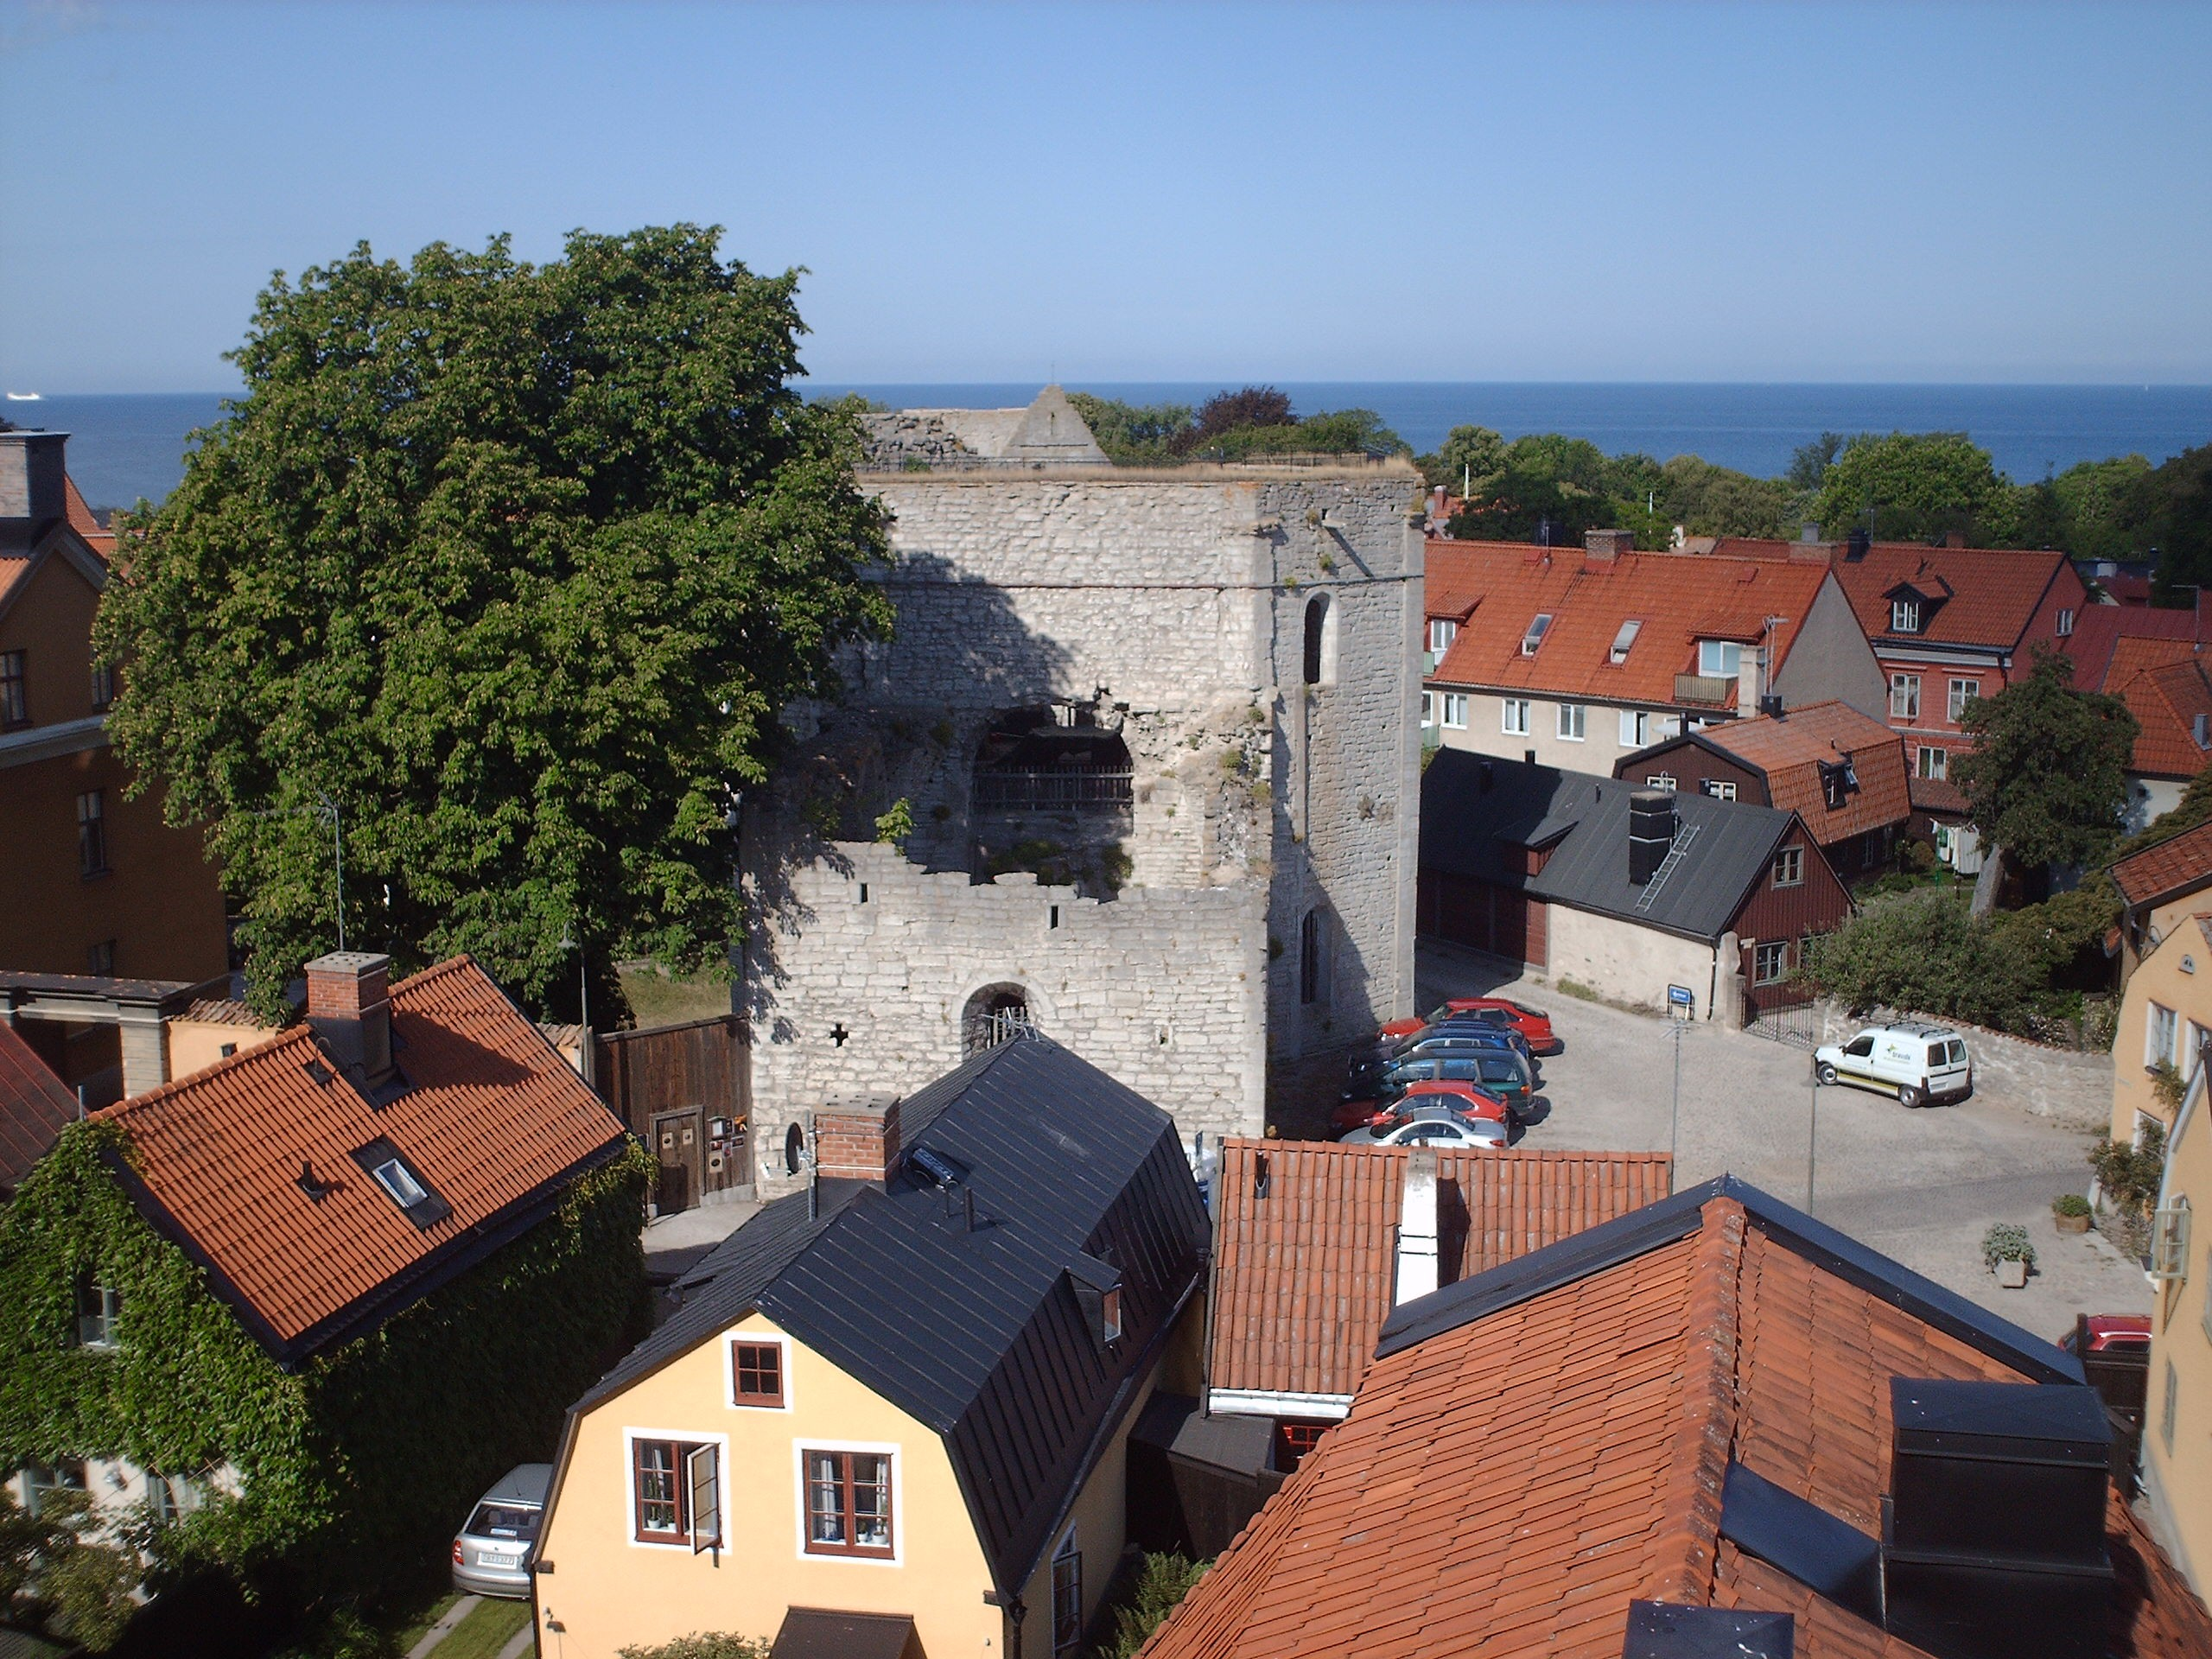 HOTEL HELGEAND WISBY VISBY 4* (Sweden) - from US